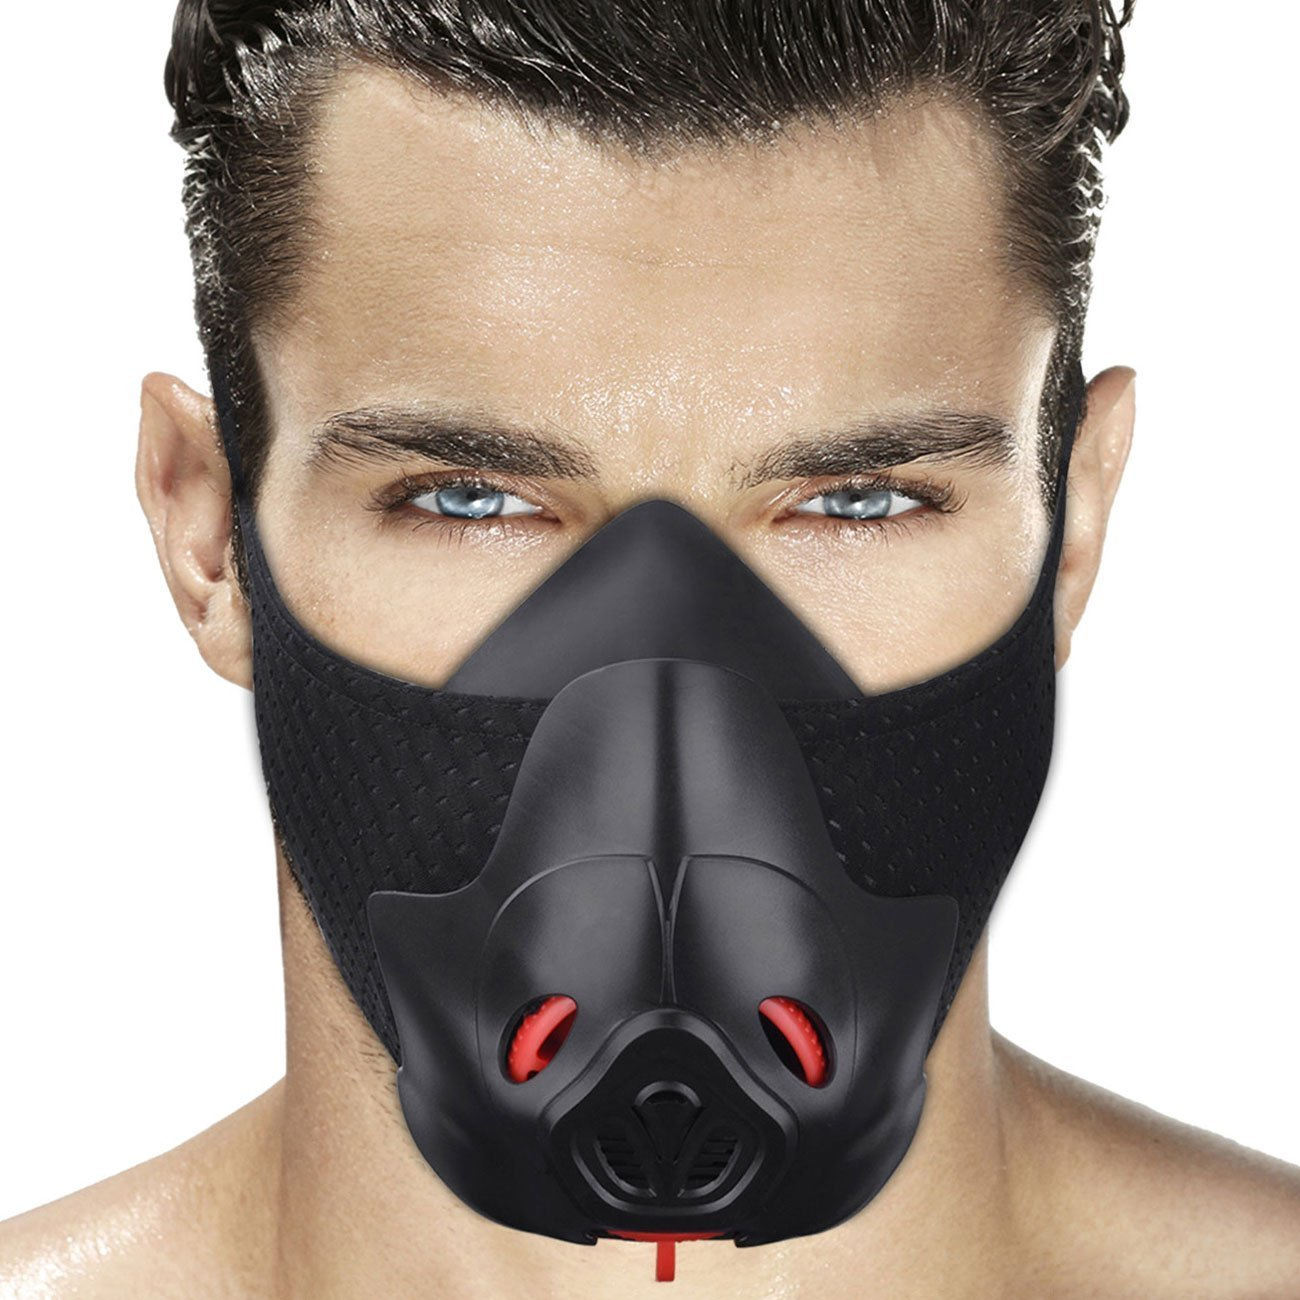 sfg Sport Workout Training Maske hypoxic Atemwiderstand Maske Fitness Running Maske ENDURANCE Maske erreichen Hohe Höhe Elevation Effekte mit 3 Level Air Flow Regulator